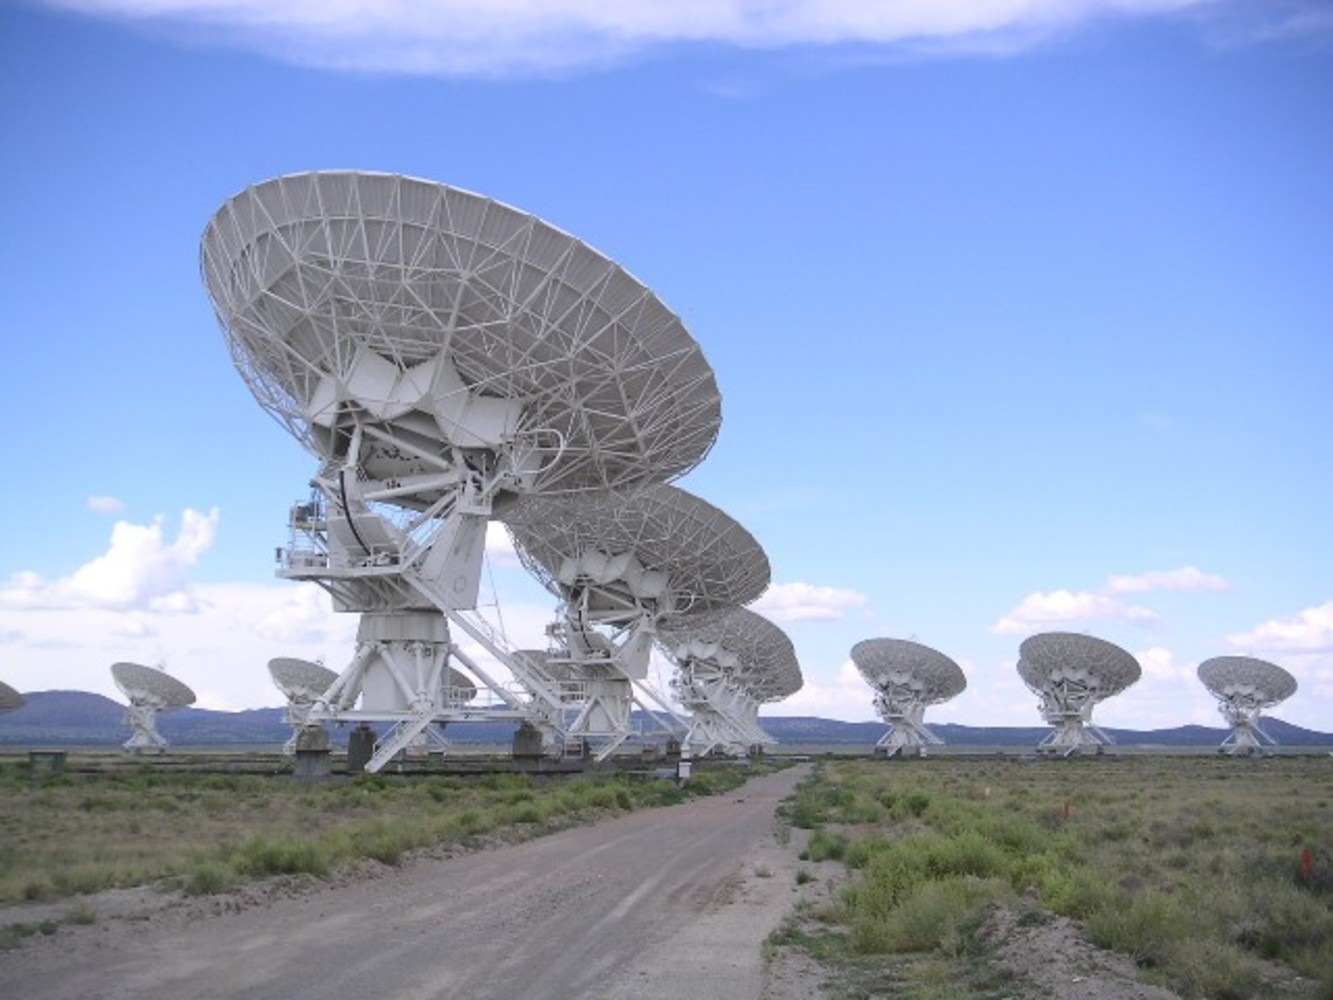 The Very Large Array at Socorro, New Mexico, United States.